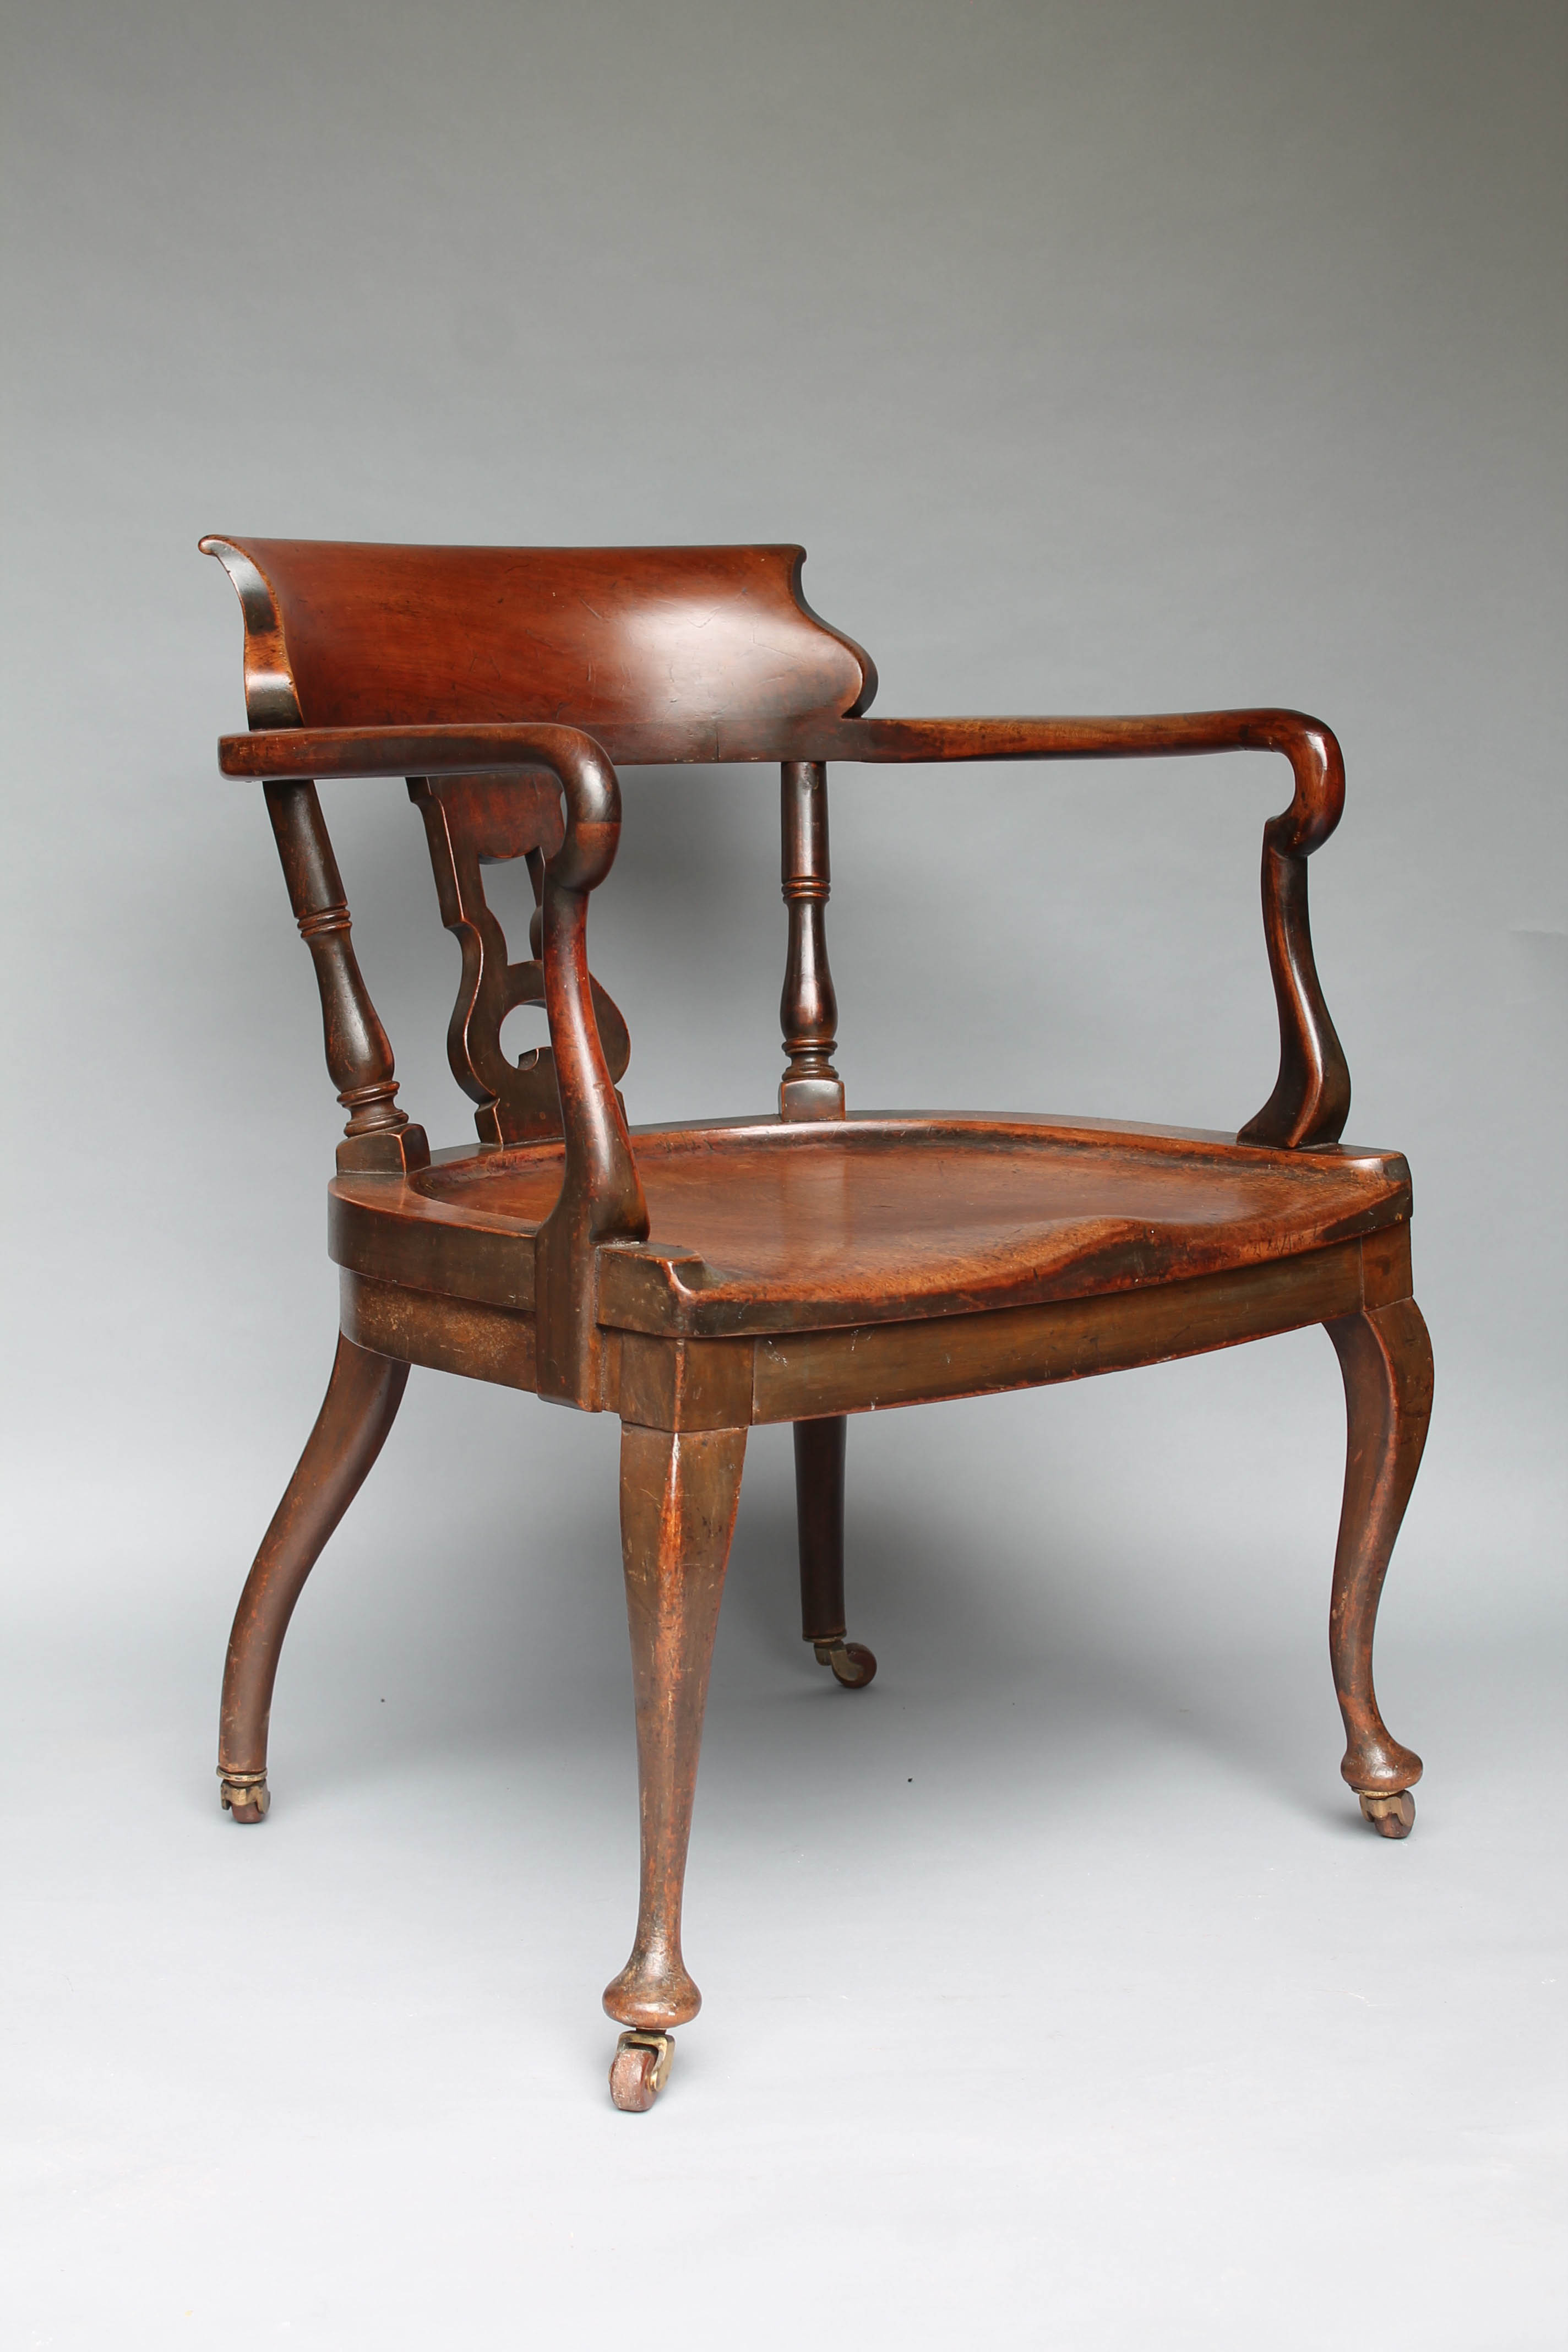 bergere armchair s library antiques premier art uk mahogany wood victoria chair regency and victorian chairs search the